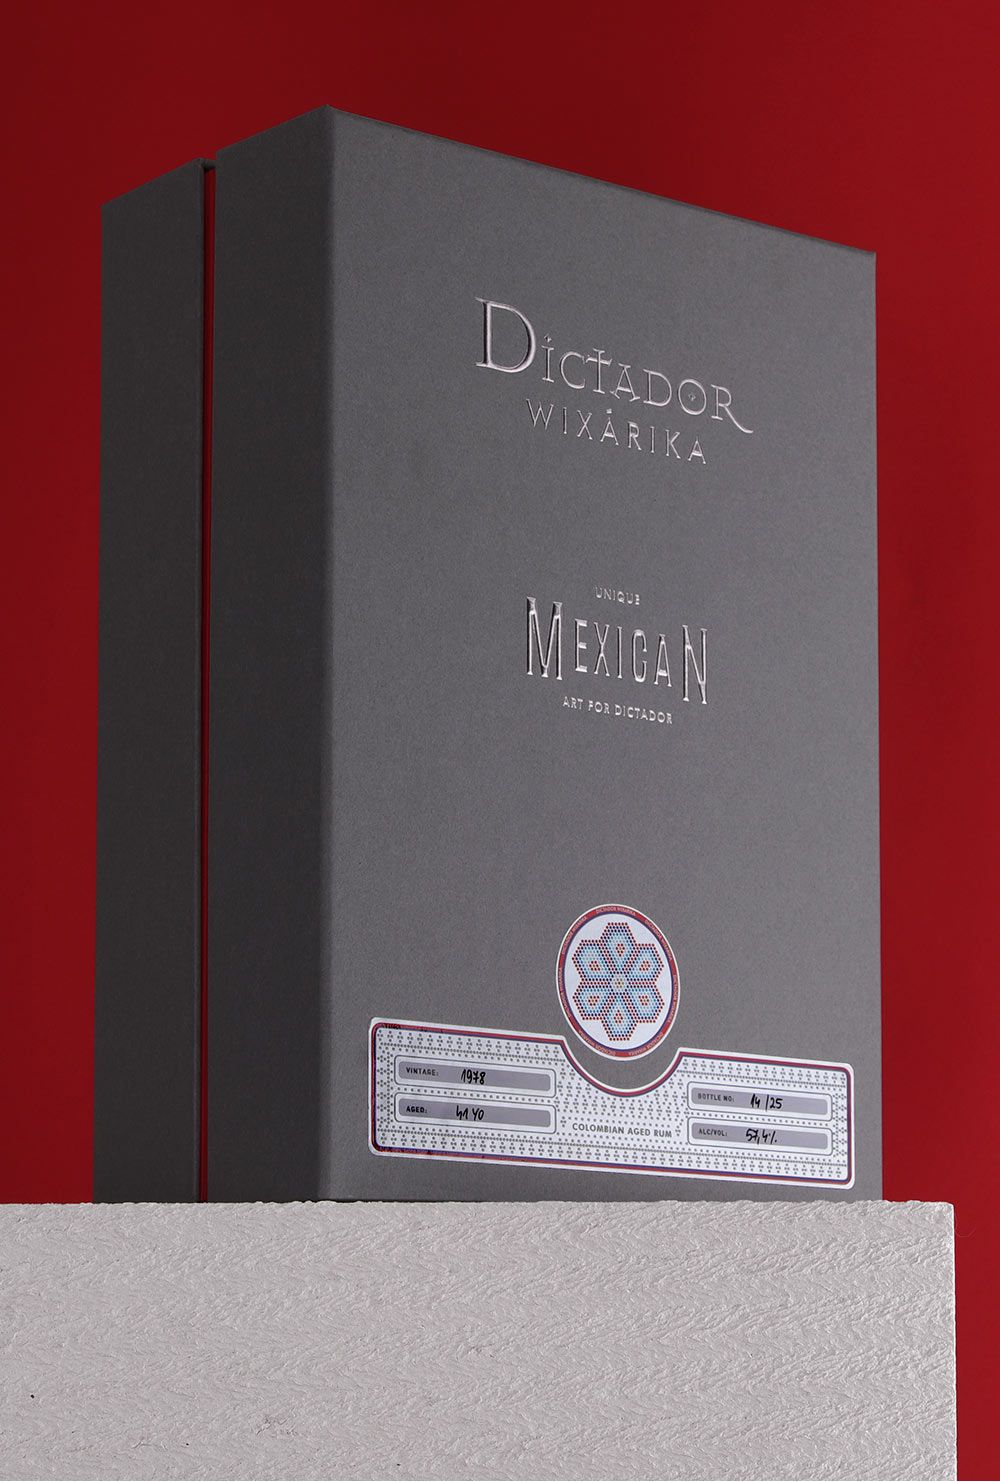 Dictador Wixarika - Model 2018/1